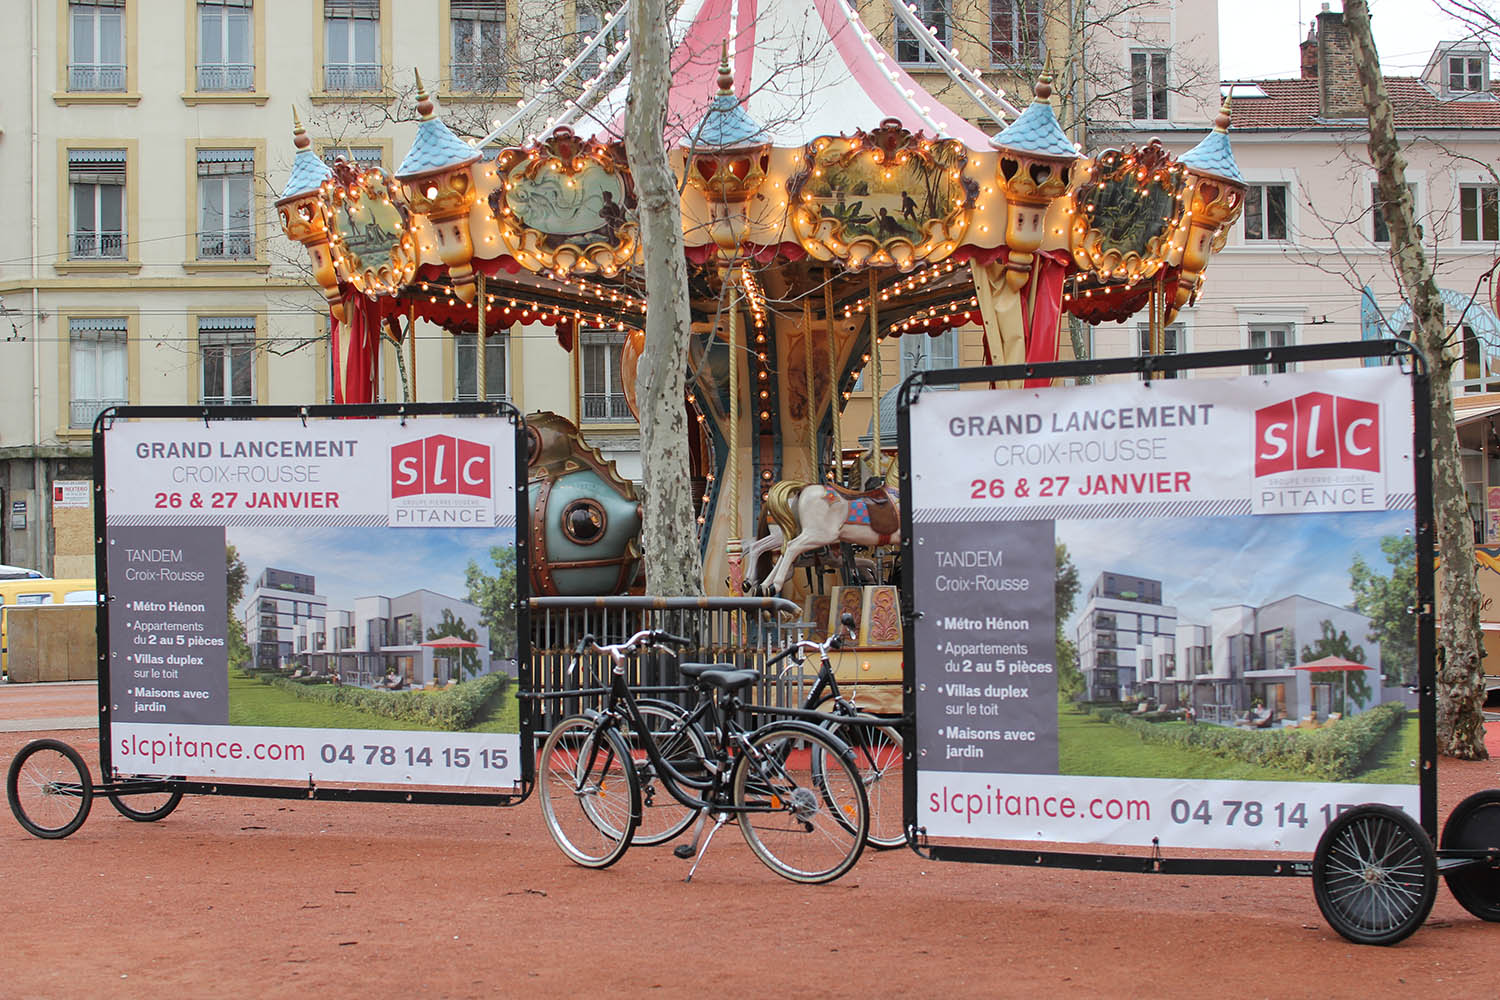 Guerilla marketing with AdBicy large mobile billboards